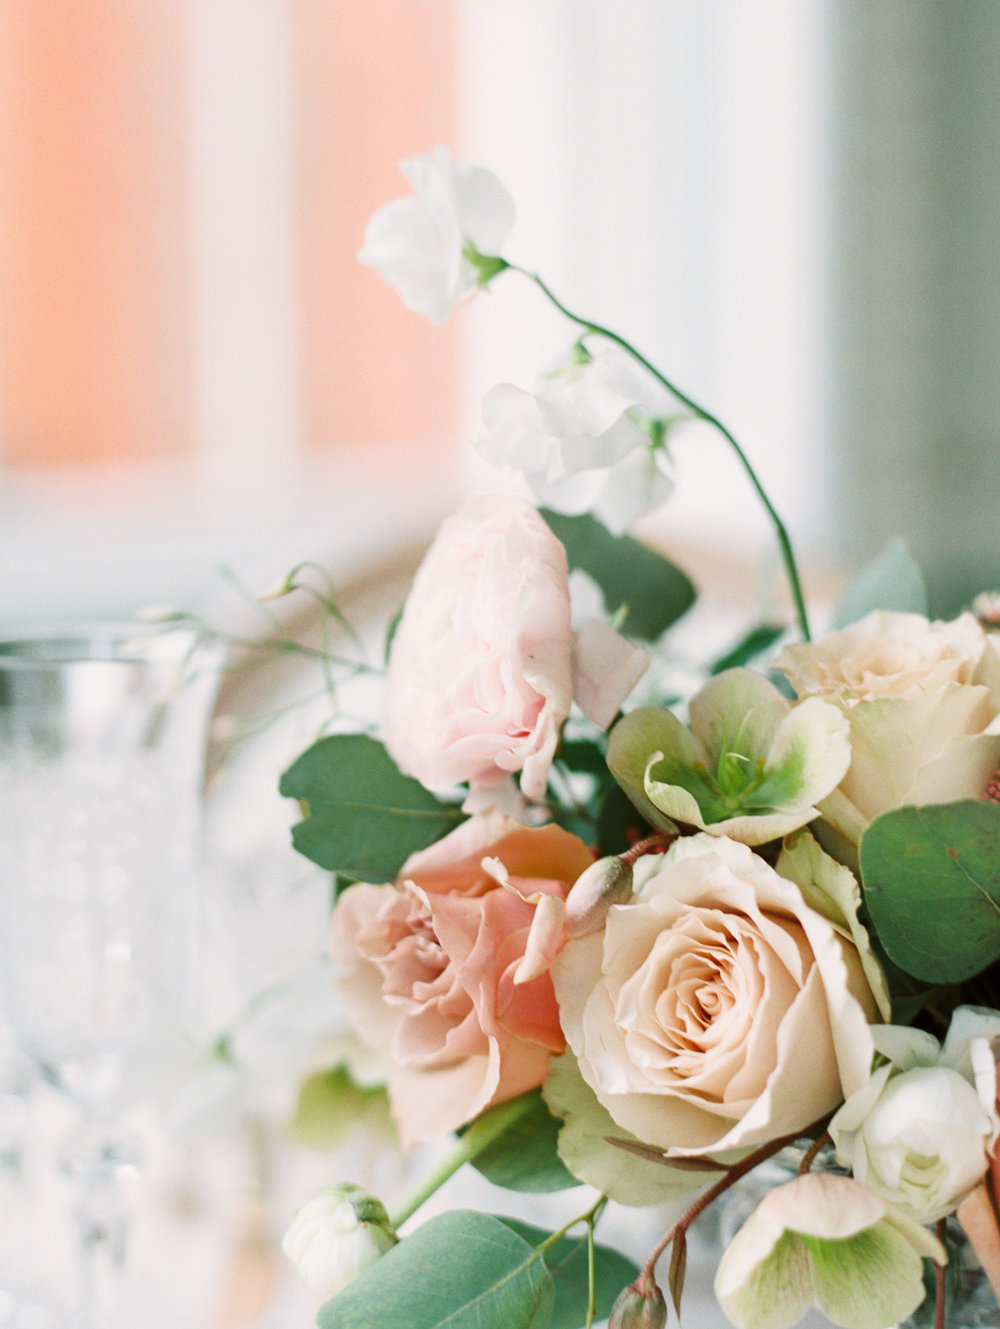 The Timeless Stylist-Elegant and Romantic Wedding Styling-Neutral Palette Wedding Flowers